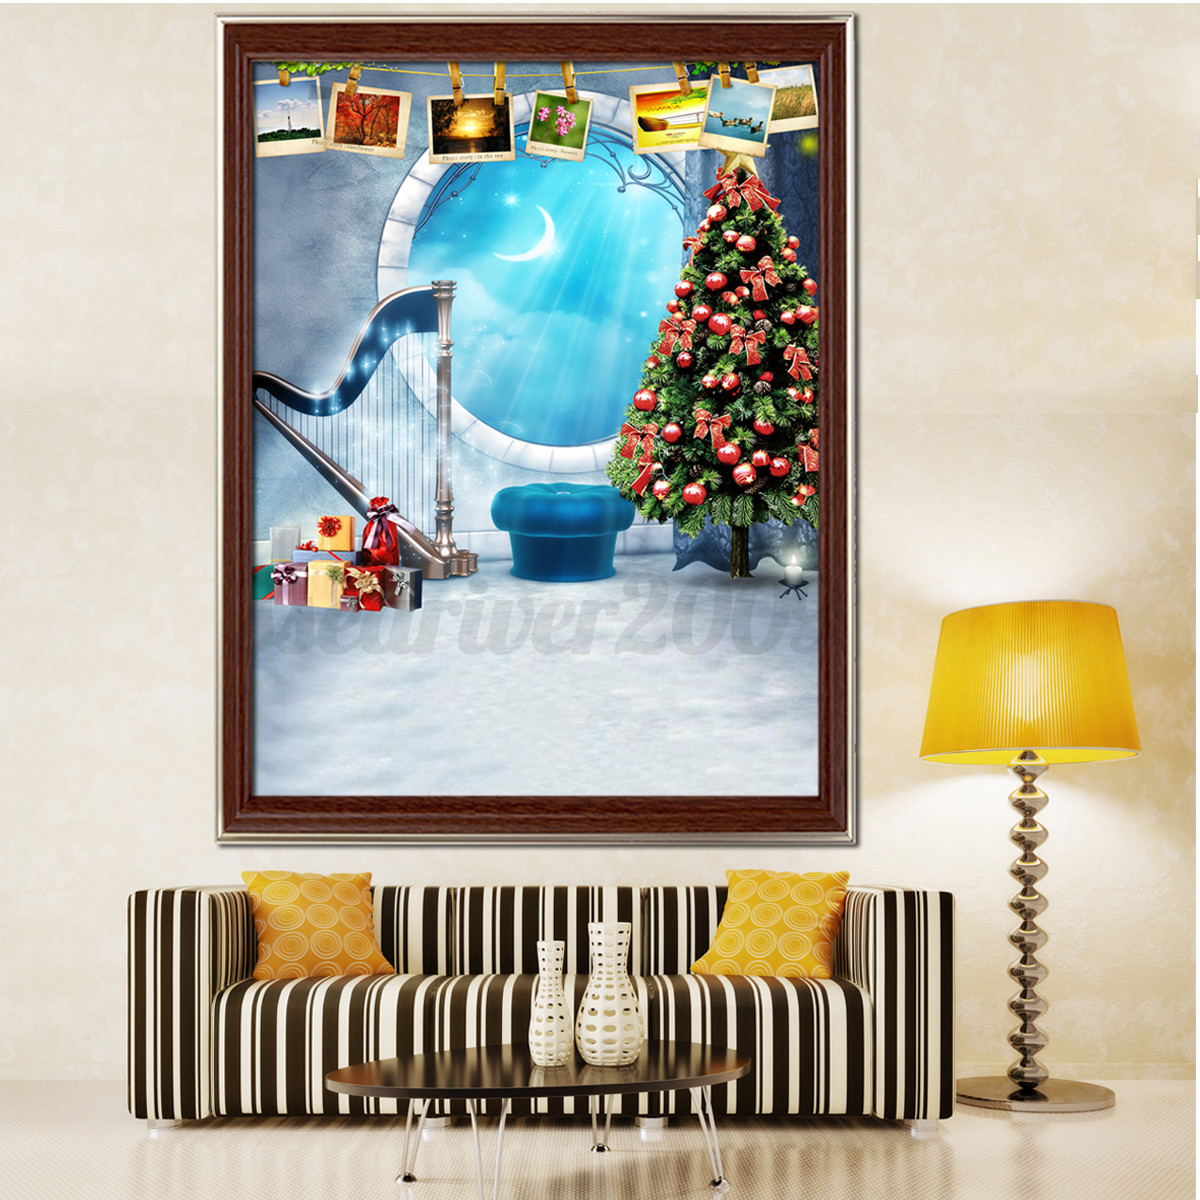 Diy 5d Diamond Painting Winter Christmas Embroidery Cross Stitch Home Decor Kit Ebay